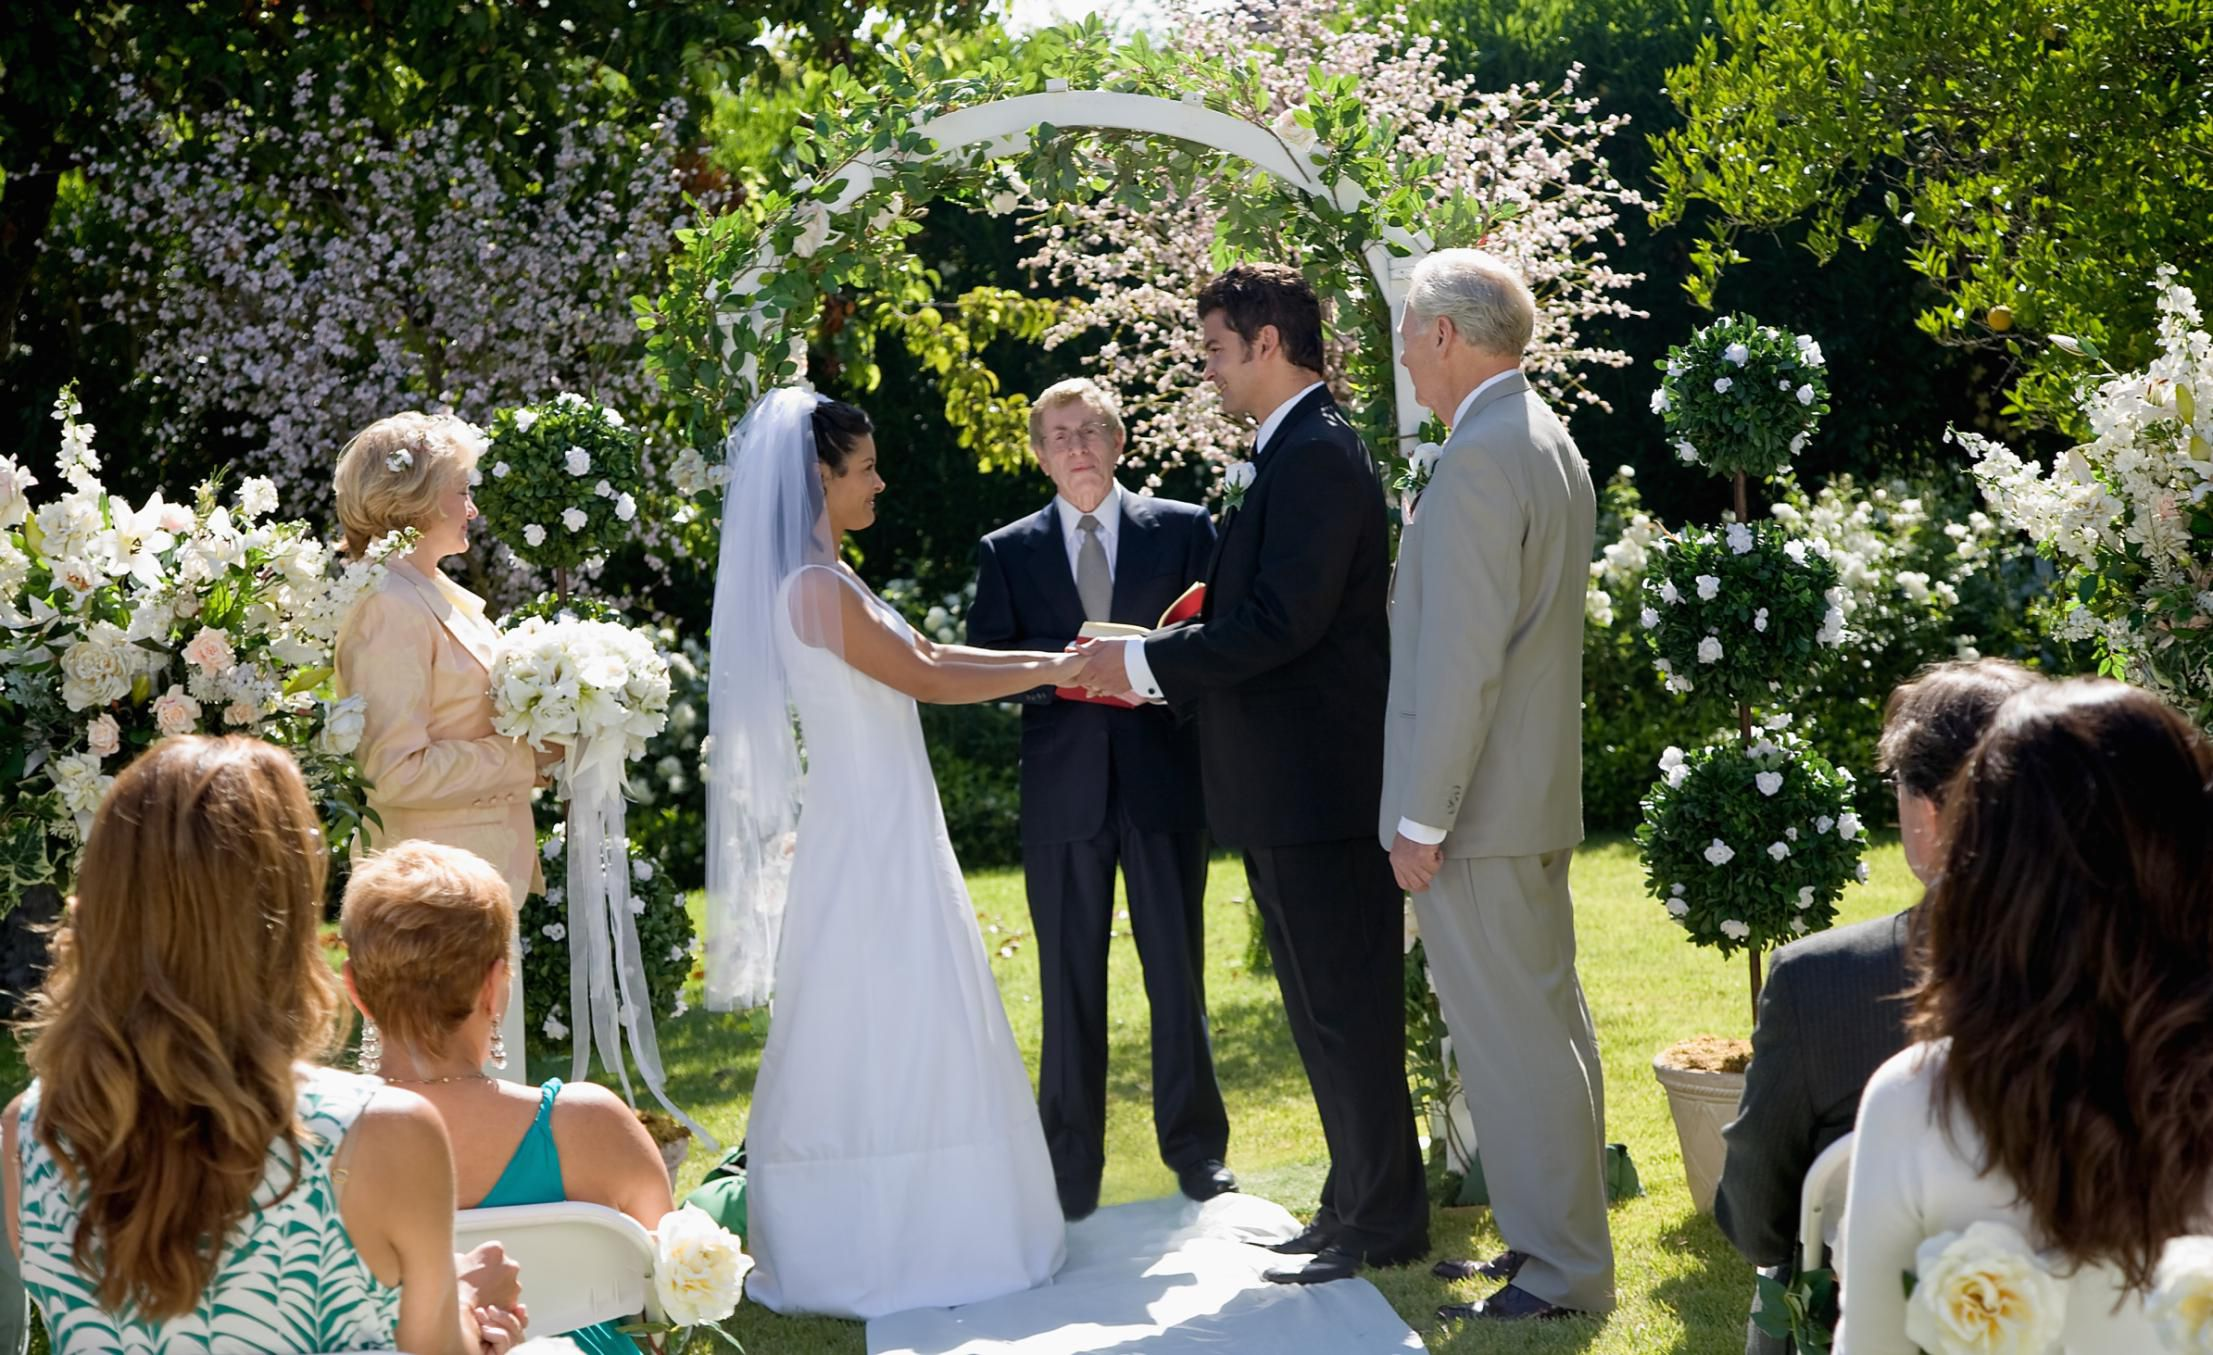 Romantic Wedding Vows for Your Wedding Ceremony